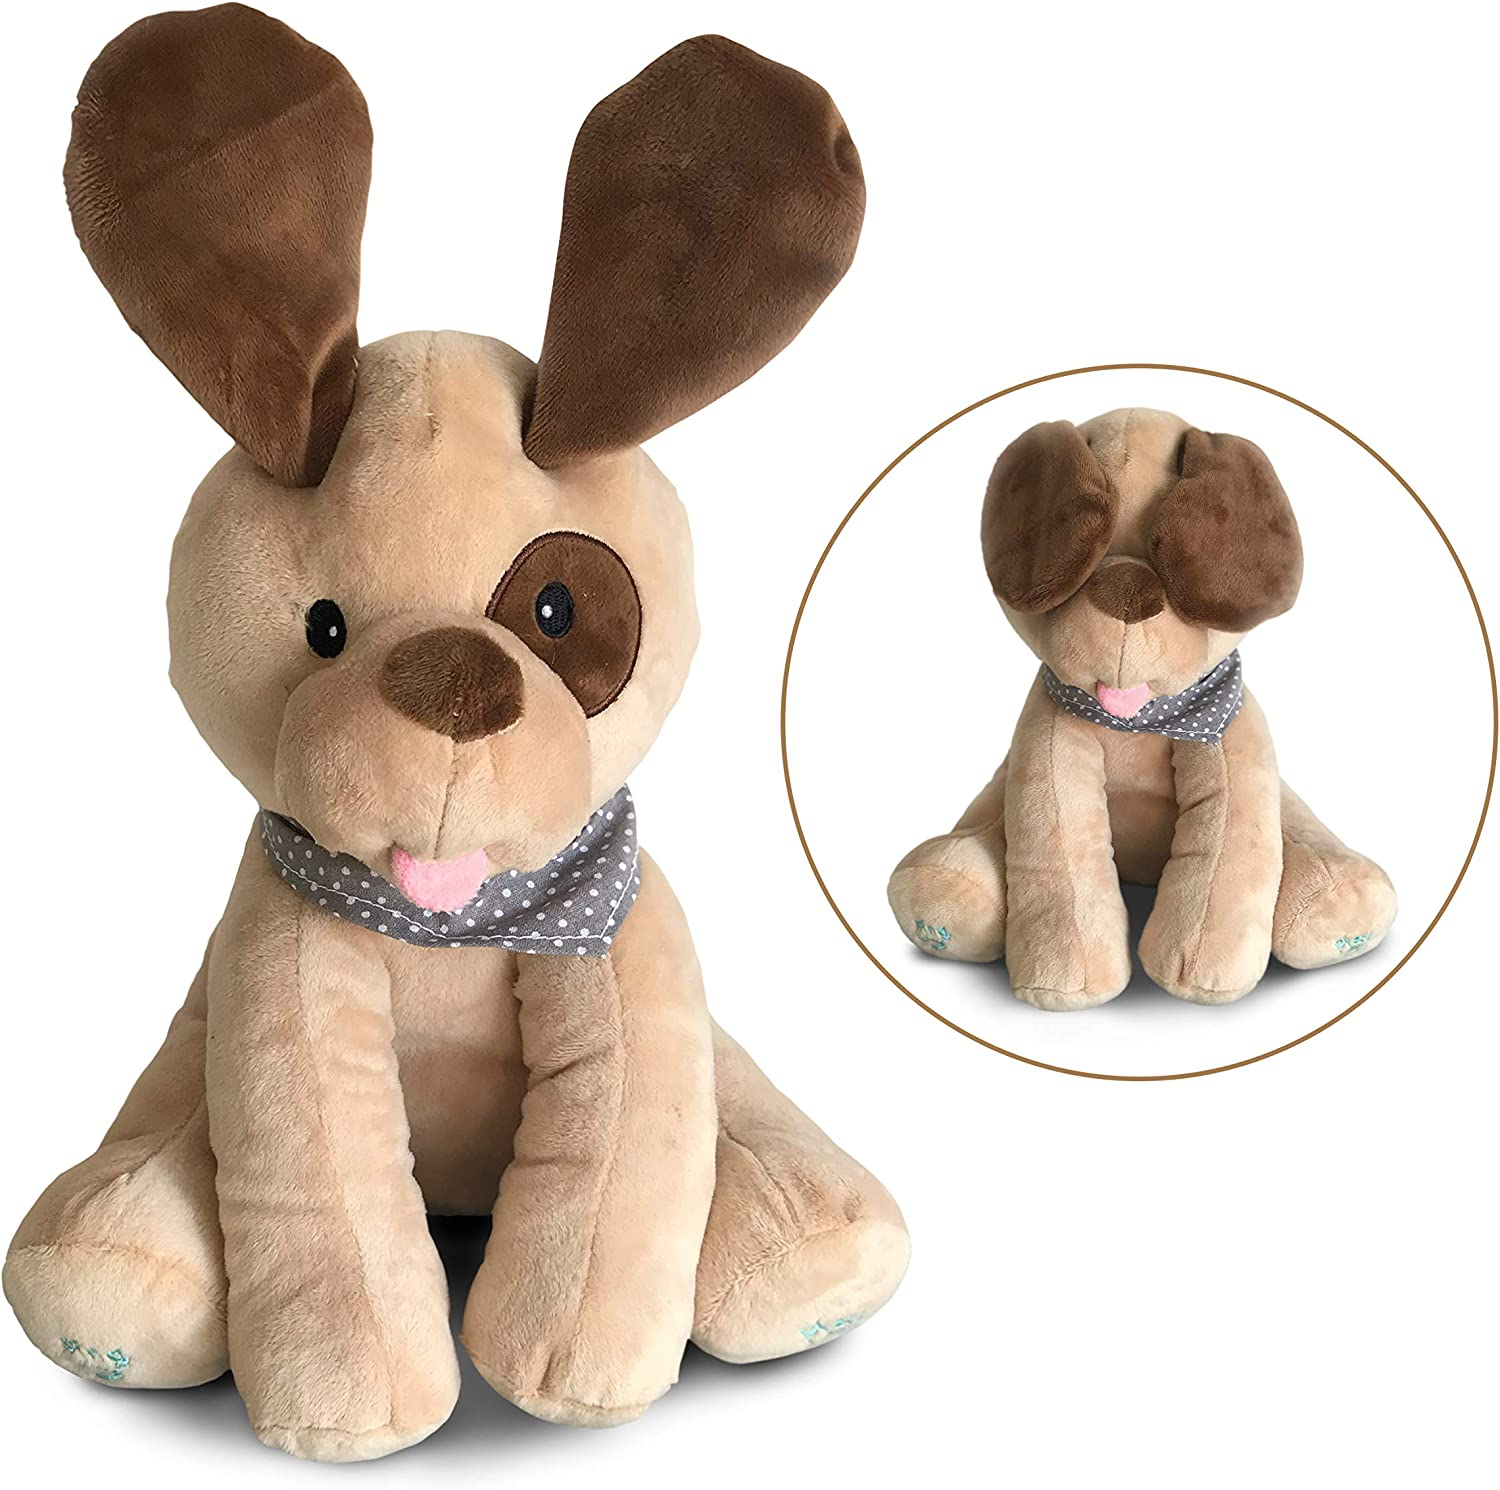 Plush singing Max 70% OFF and playing Be super welcome interactive stuffed babi puppy dog for